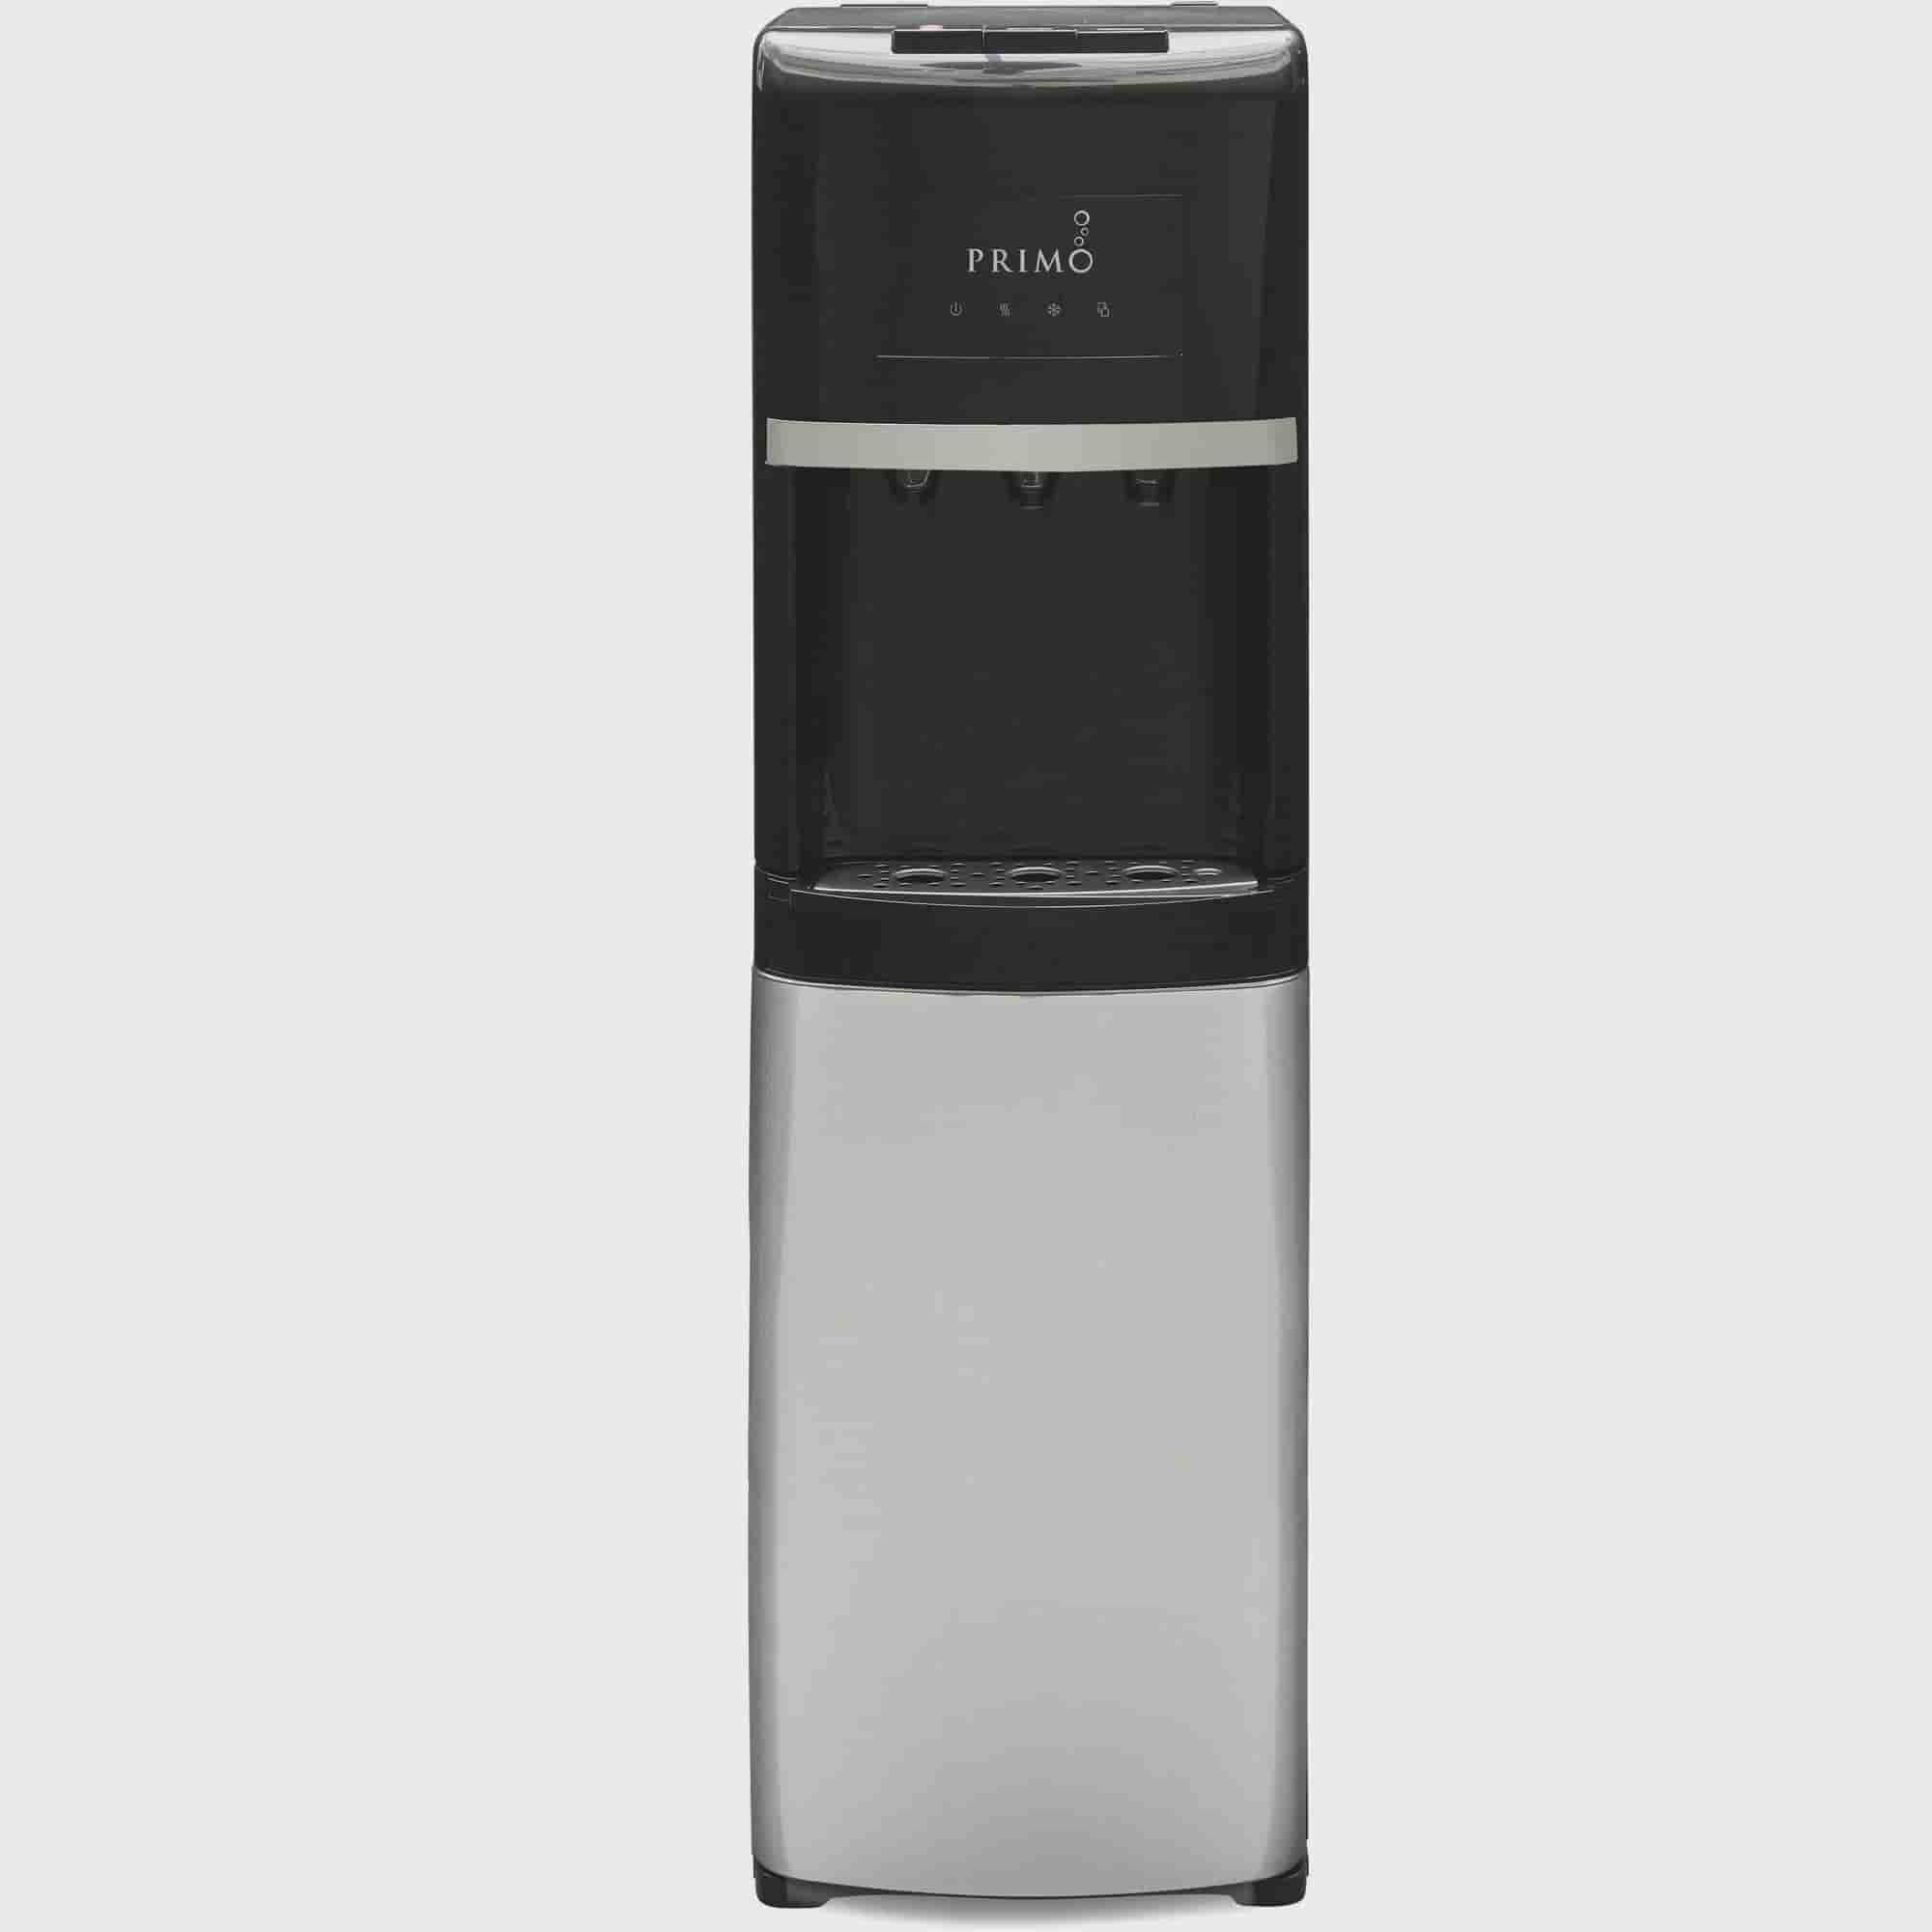 Primo Bottom Load Water Dispenser Stainless Steel Black